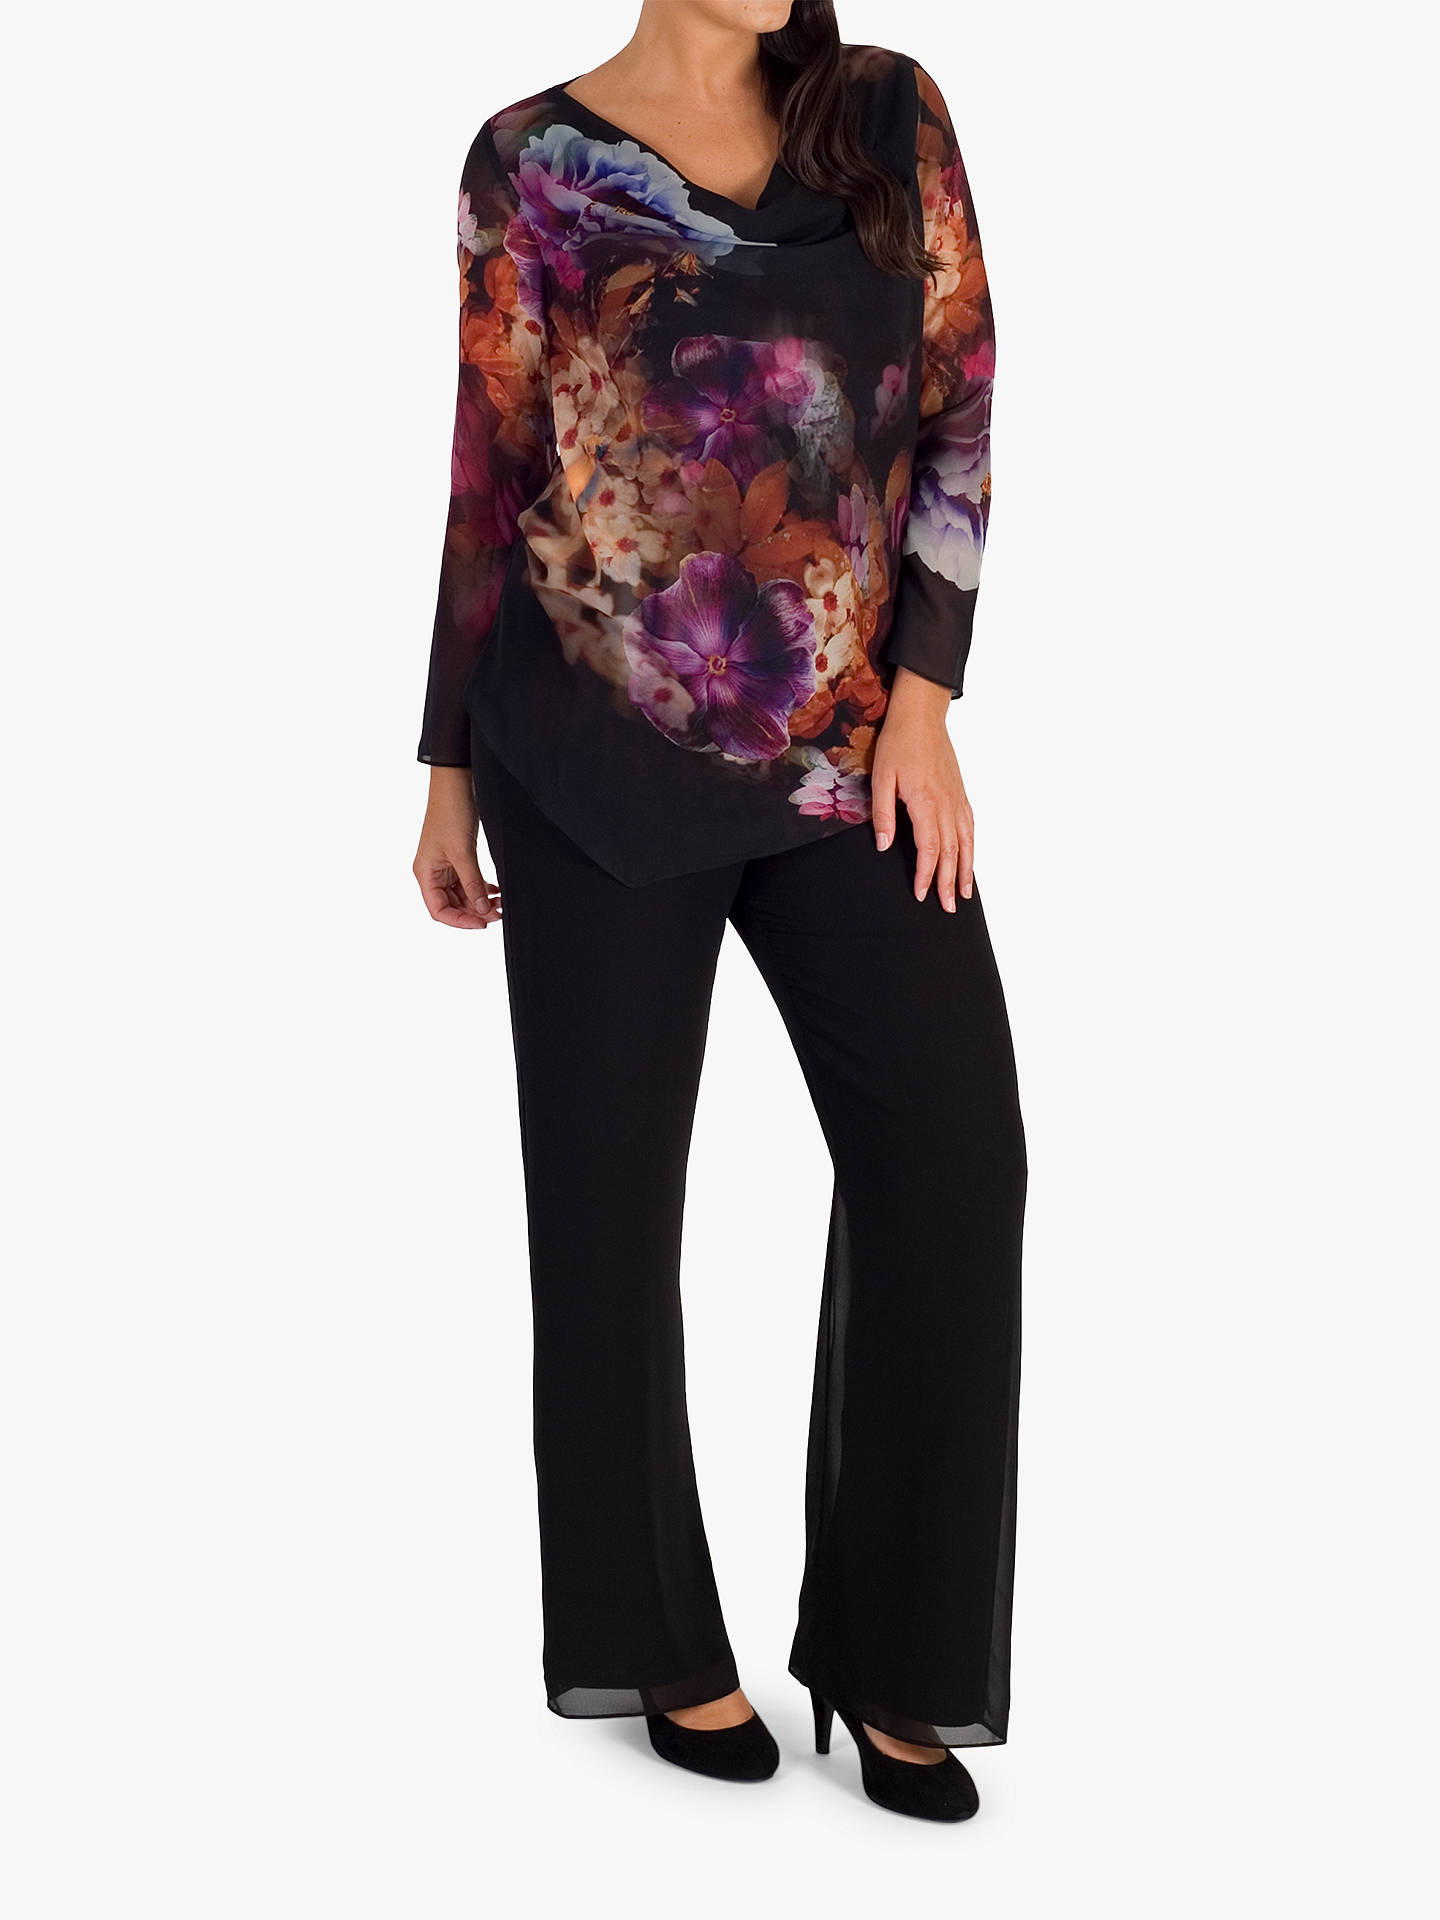 BuyChesca Floral Print Chiffon Top, Black/Multi, 20-22 Online at johnlewis.com